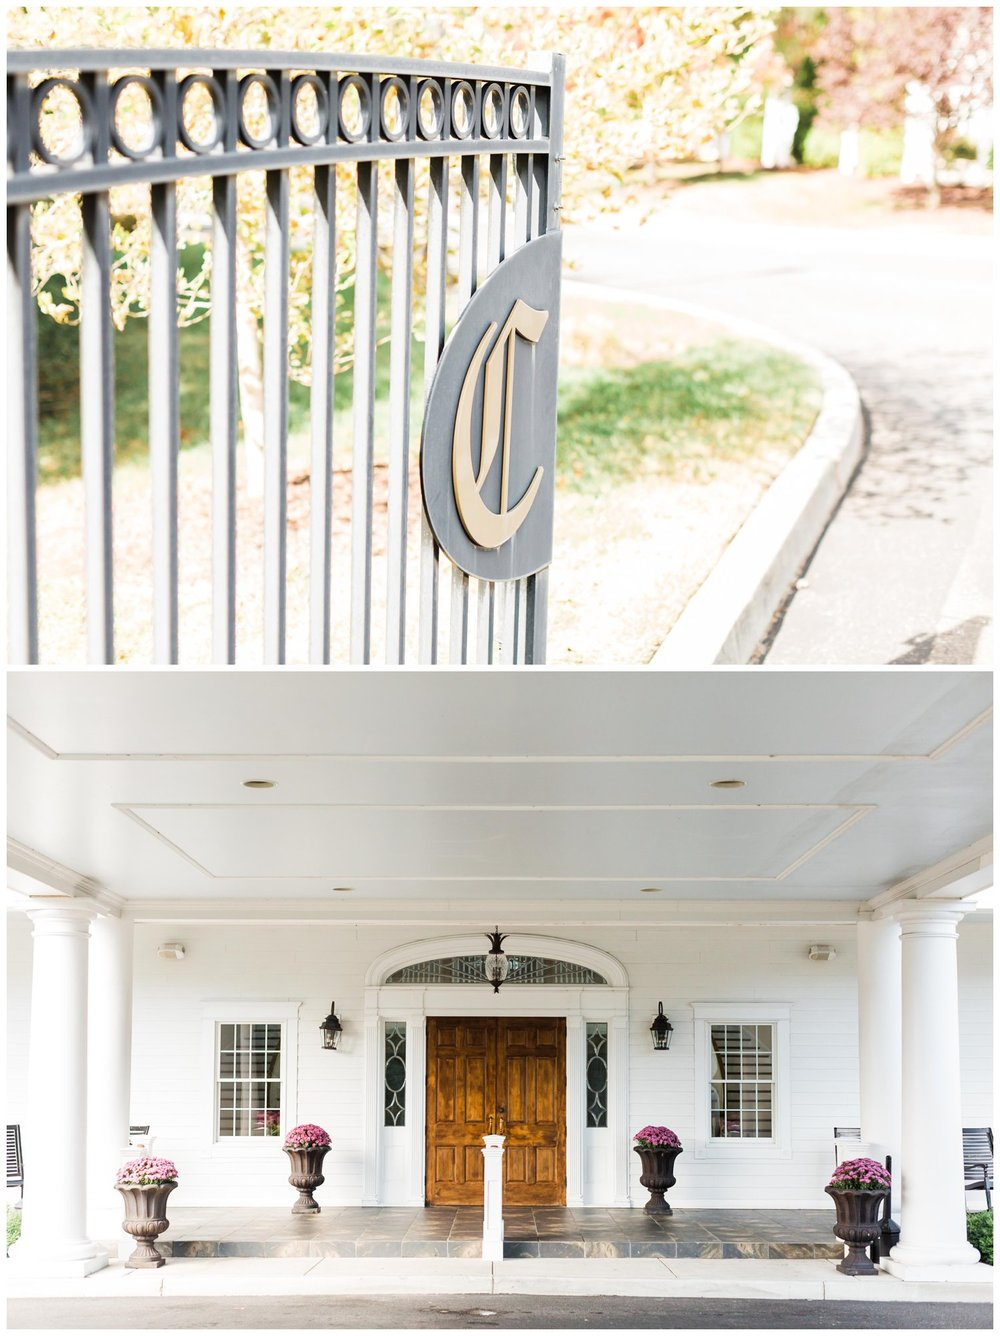 JenandEd_NewJerseyWedding_CarriageHouse_Galloway_NJ__SouthJersey_Wedding_Photographer_MagdalenaStudios_0212.jpg